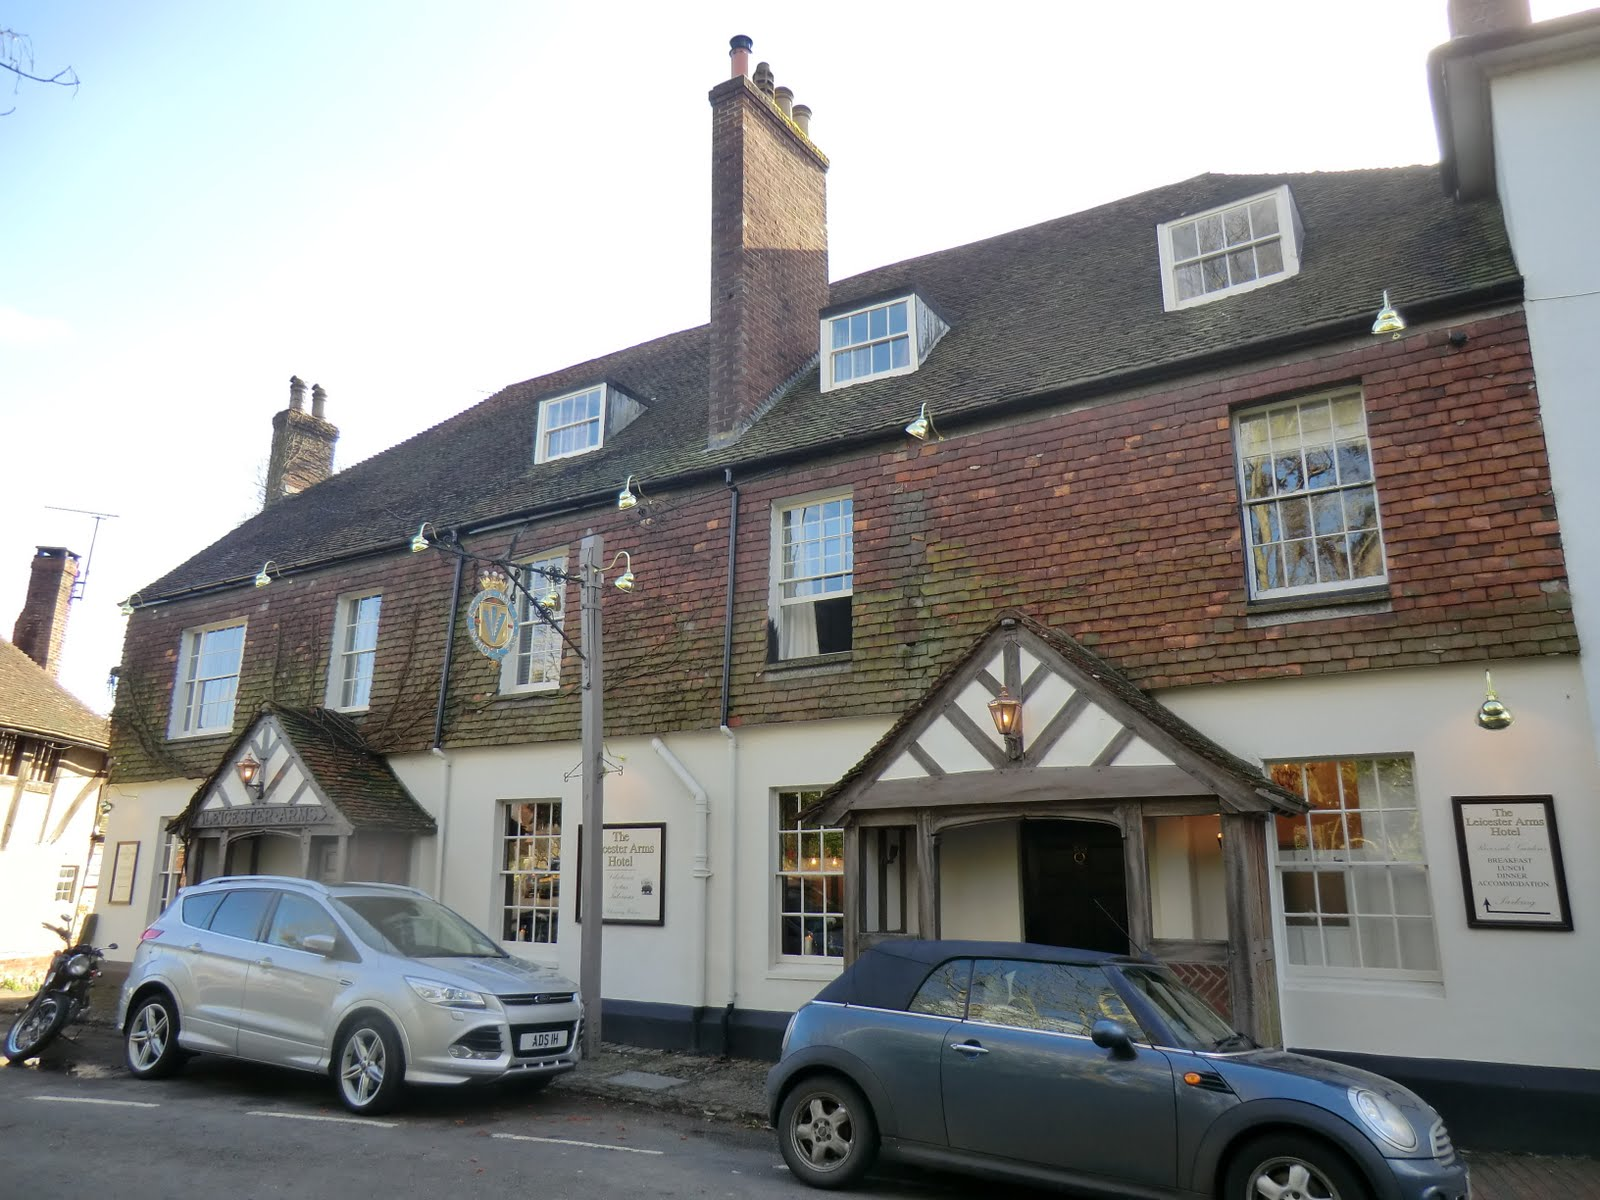 CIMG9930 A new look for the Leicester Arms Hotel, Penshurst